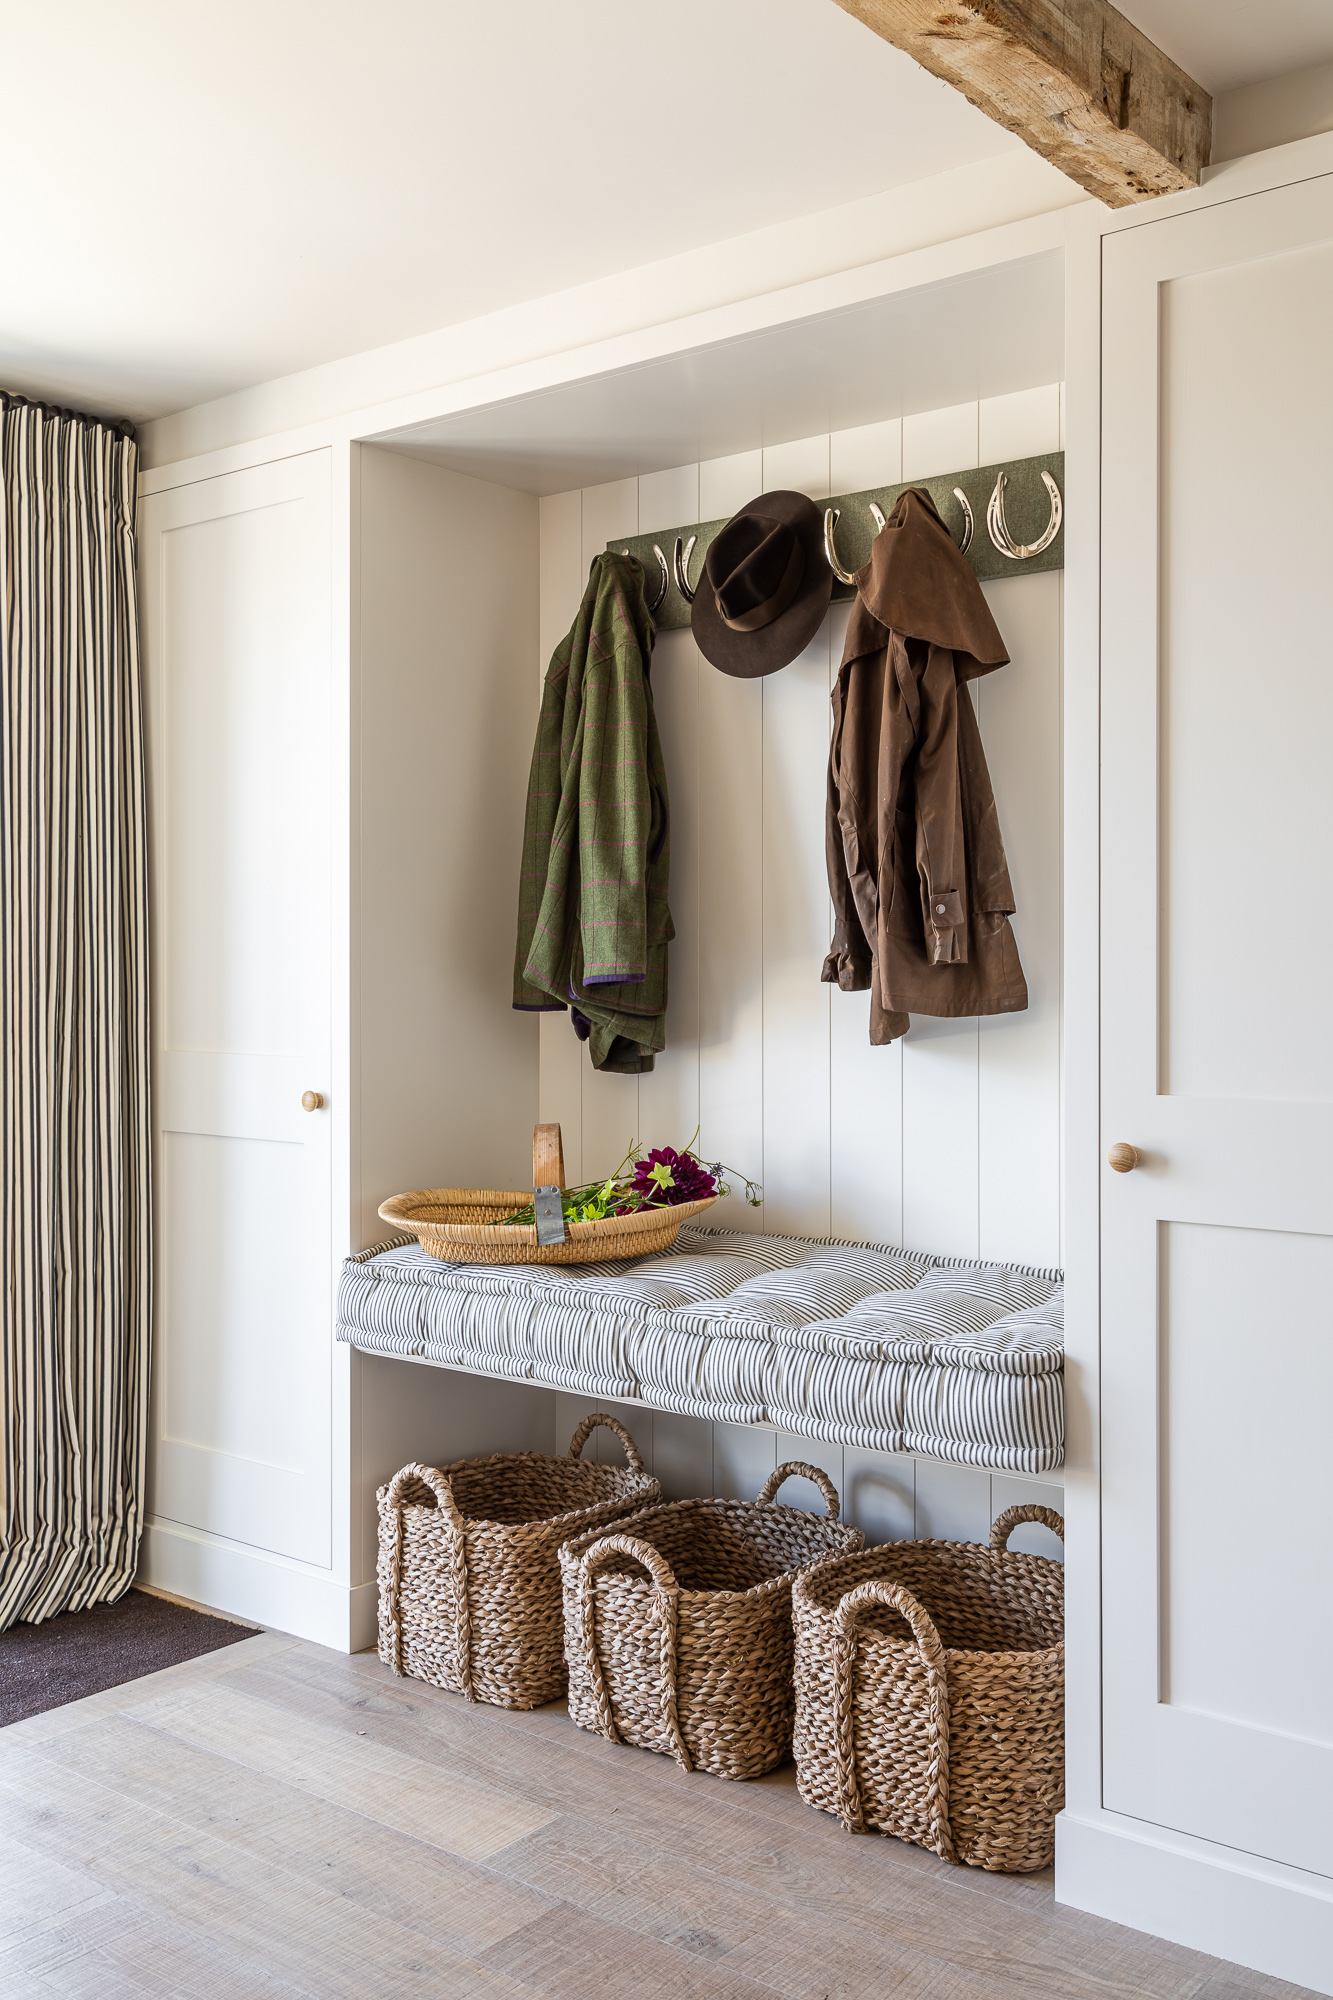 jonathan bond, interior photographer, wall mounted coat rack & seat marnhull